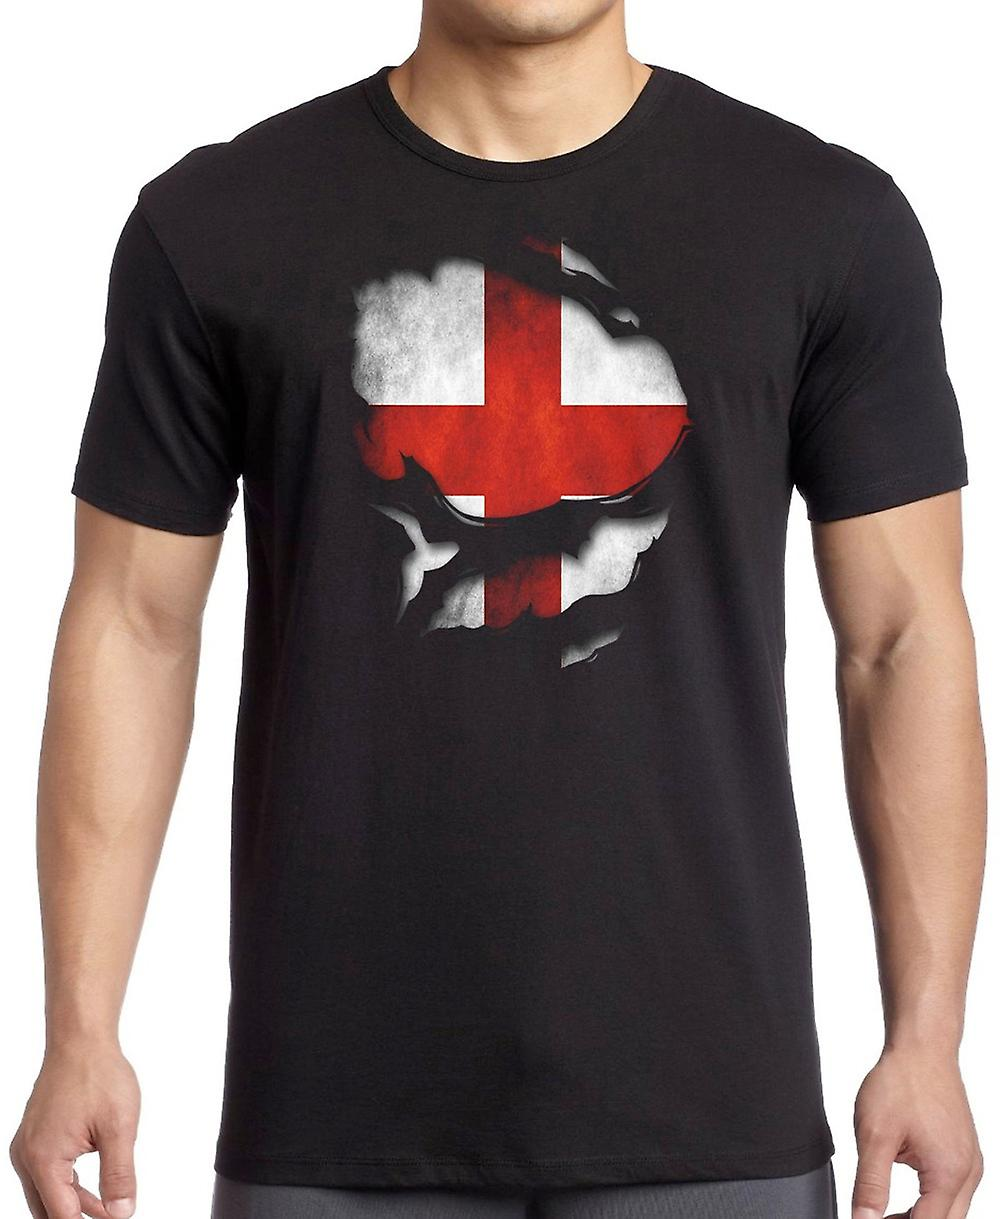 England Ripped Effect Under Shirt Kids T Shirt